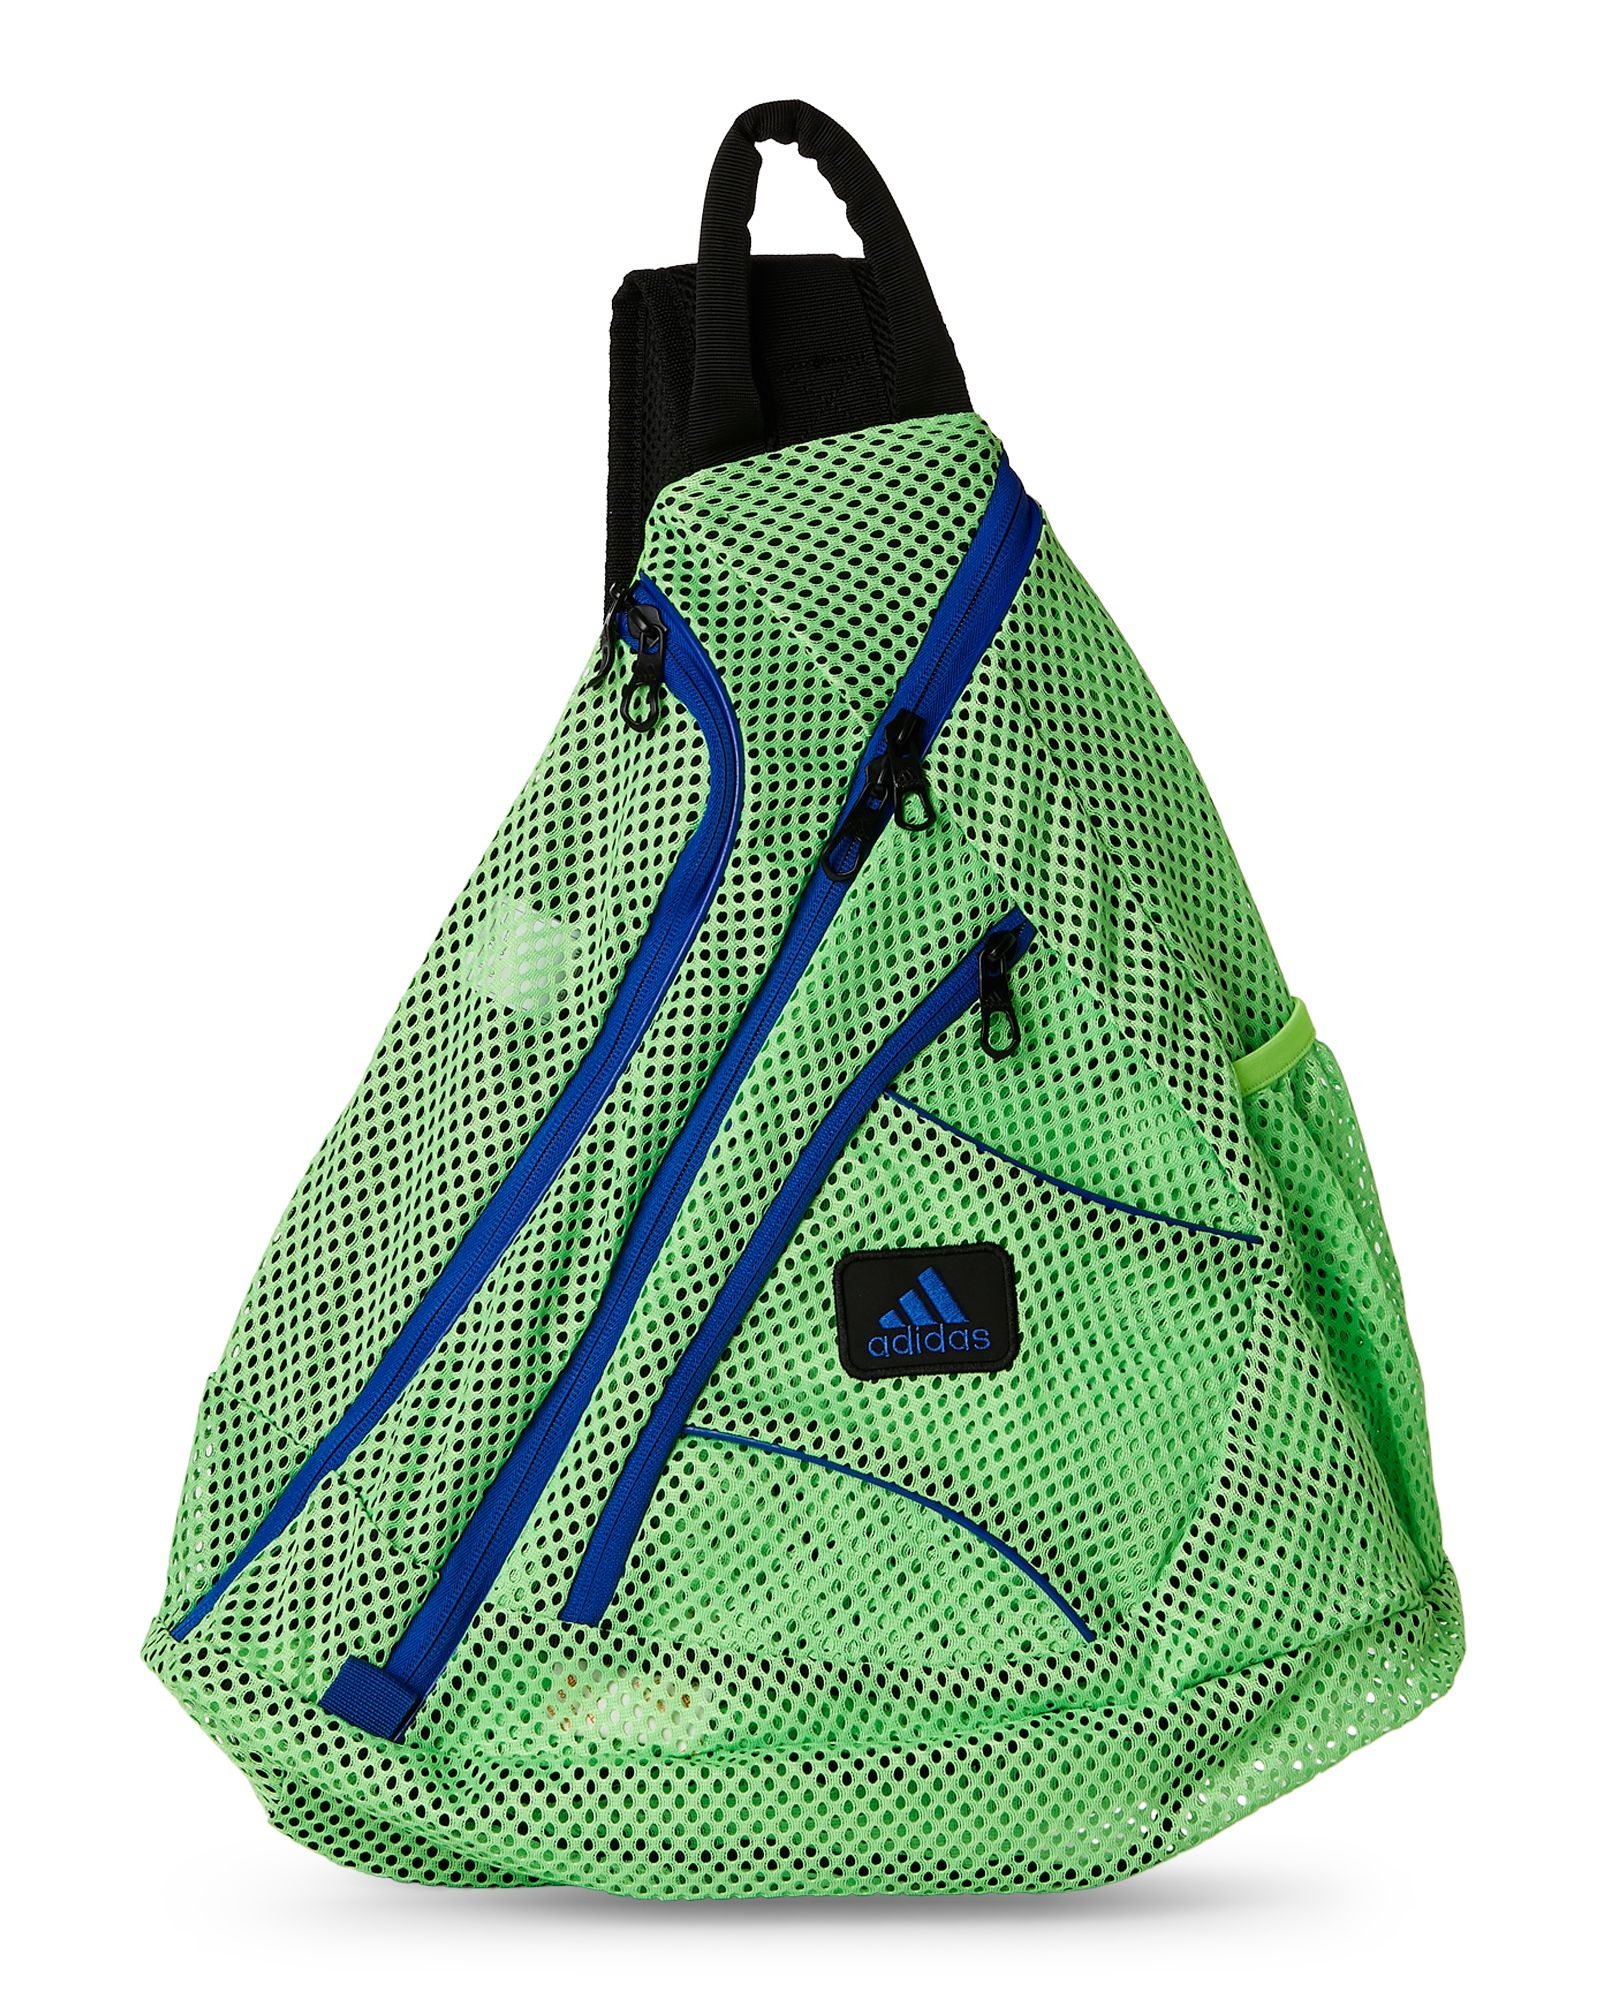 9f3513ccd5f2 Adidas Green   Blue Vista Mesh Sling Backpack